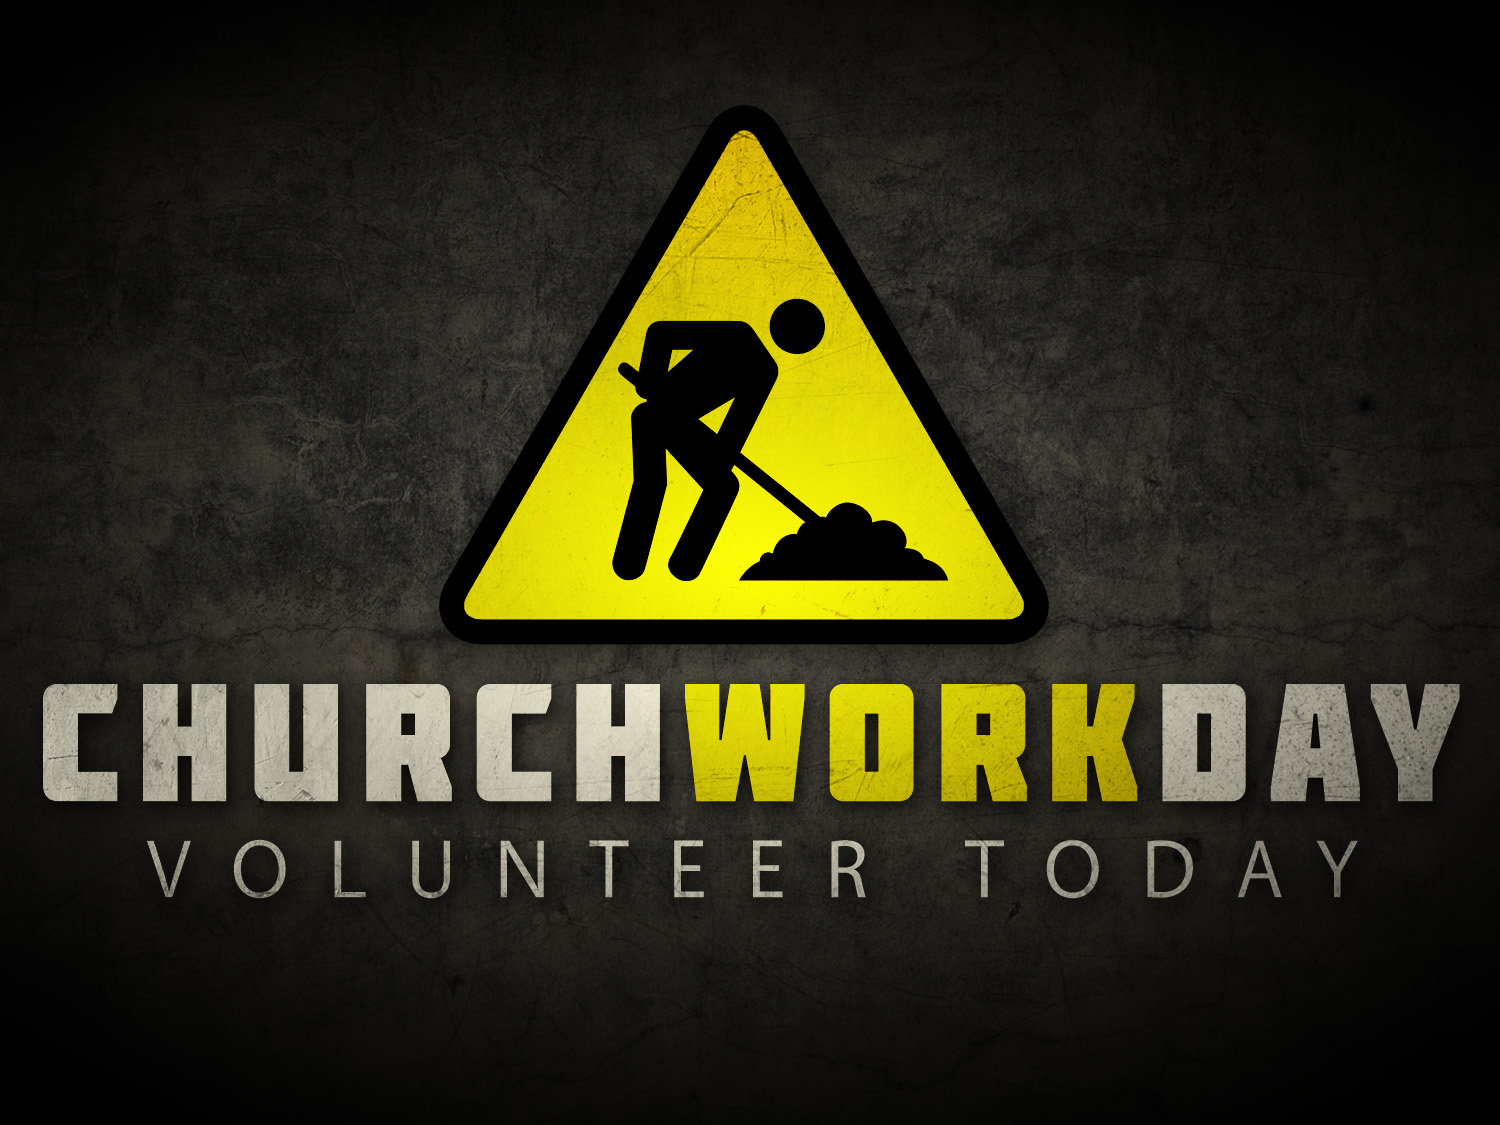 All Church Work Day